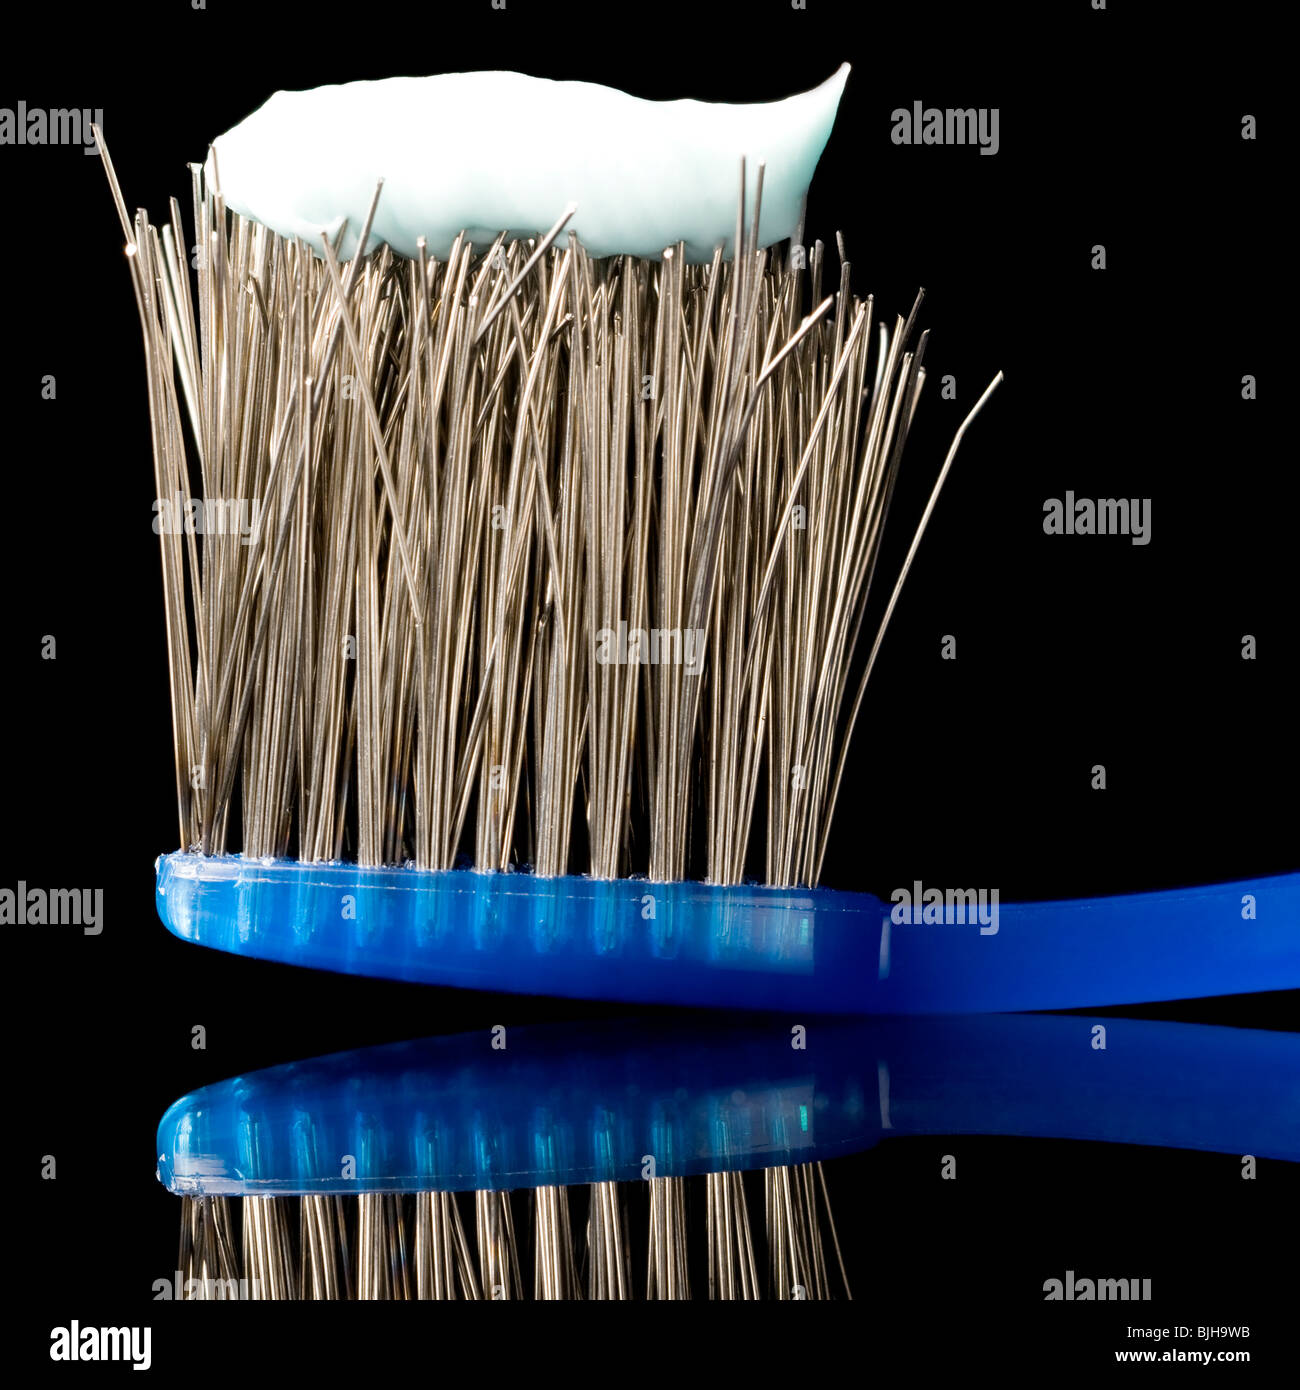 toothbrush with the bristles made of metal wires - Stock Image